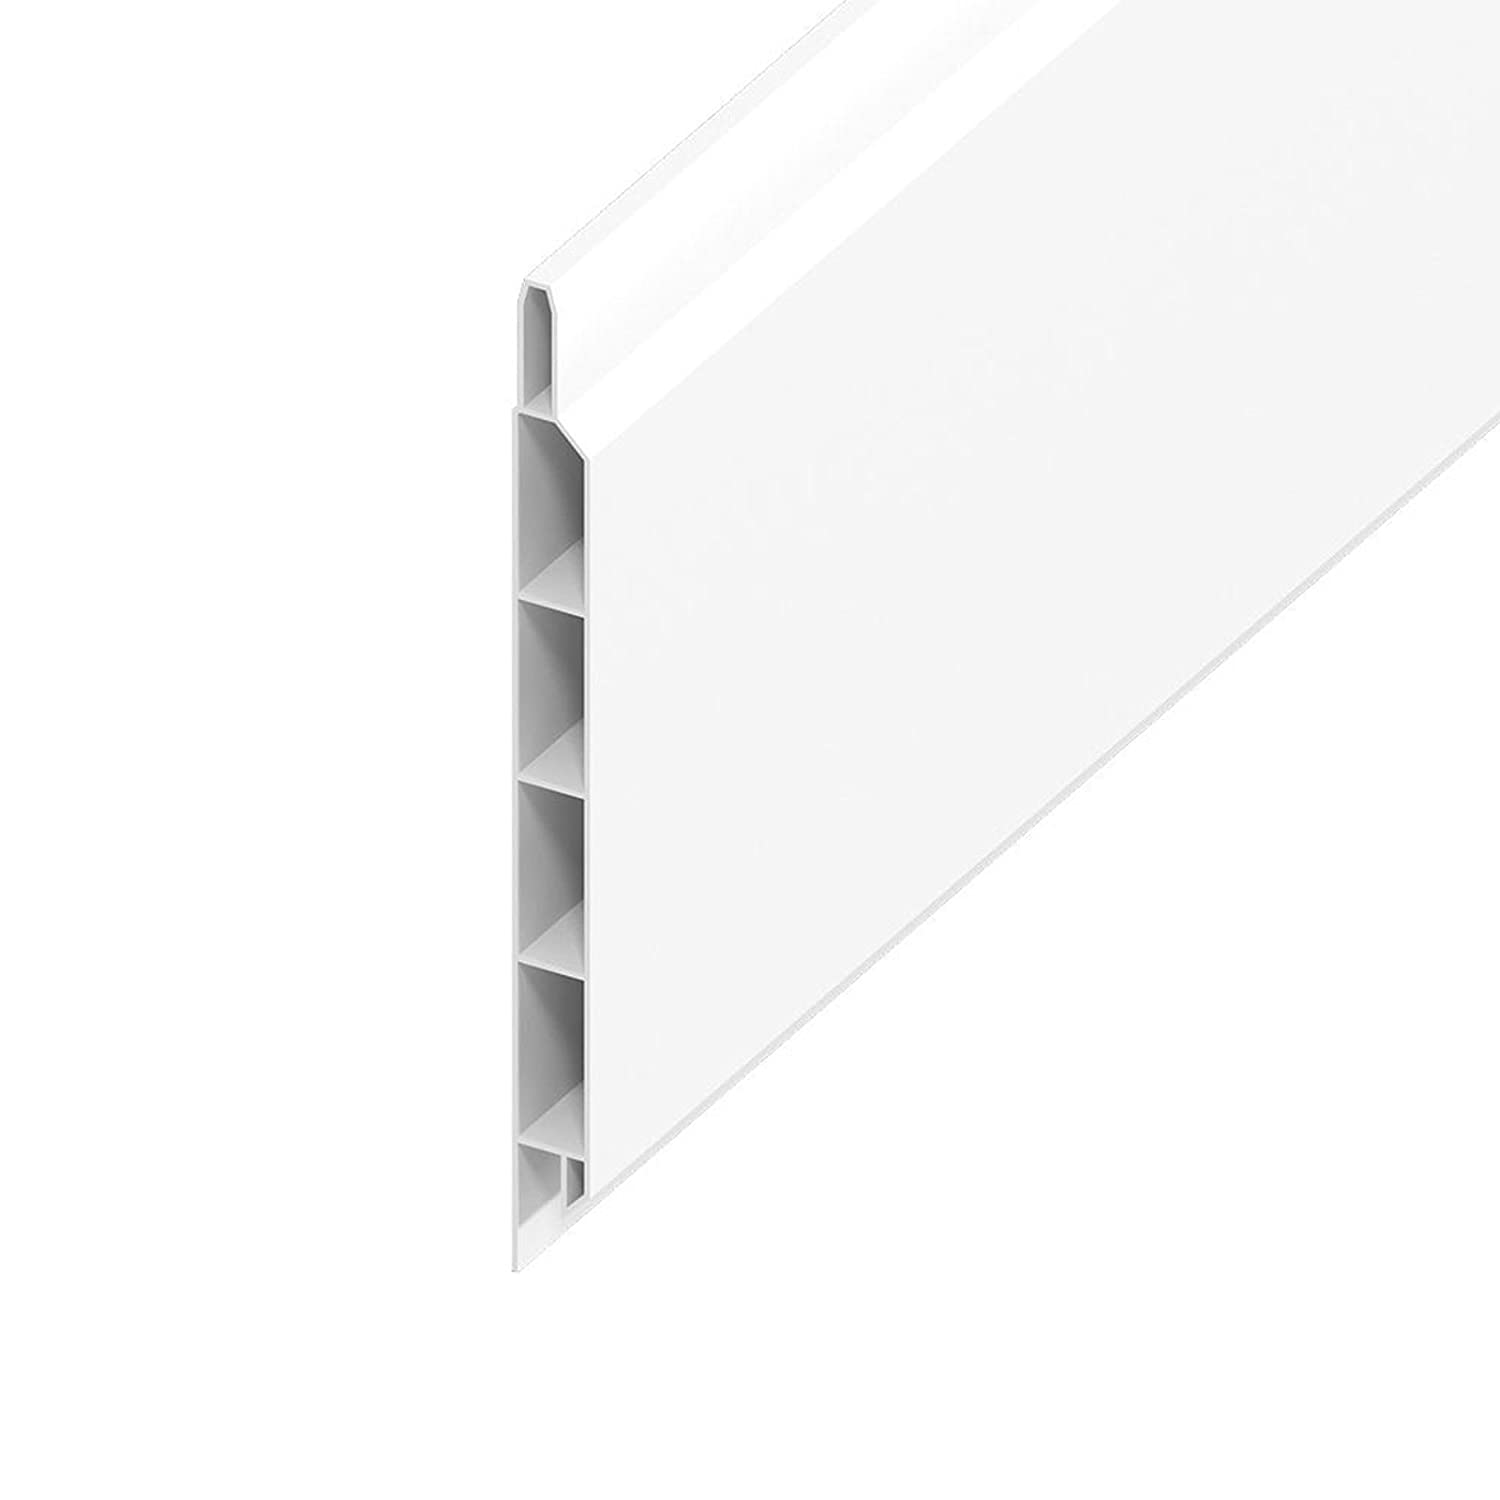 White, 100mm UPVC Flat Plastic Board / Soffit 9mm x 5m Length General Purpose Utility Liner Truly PVC Supplies